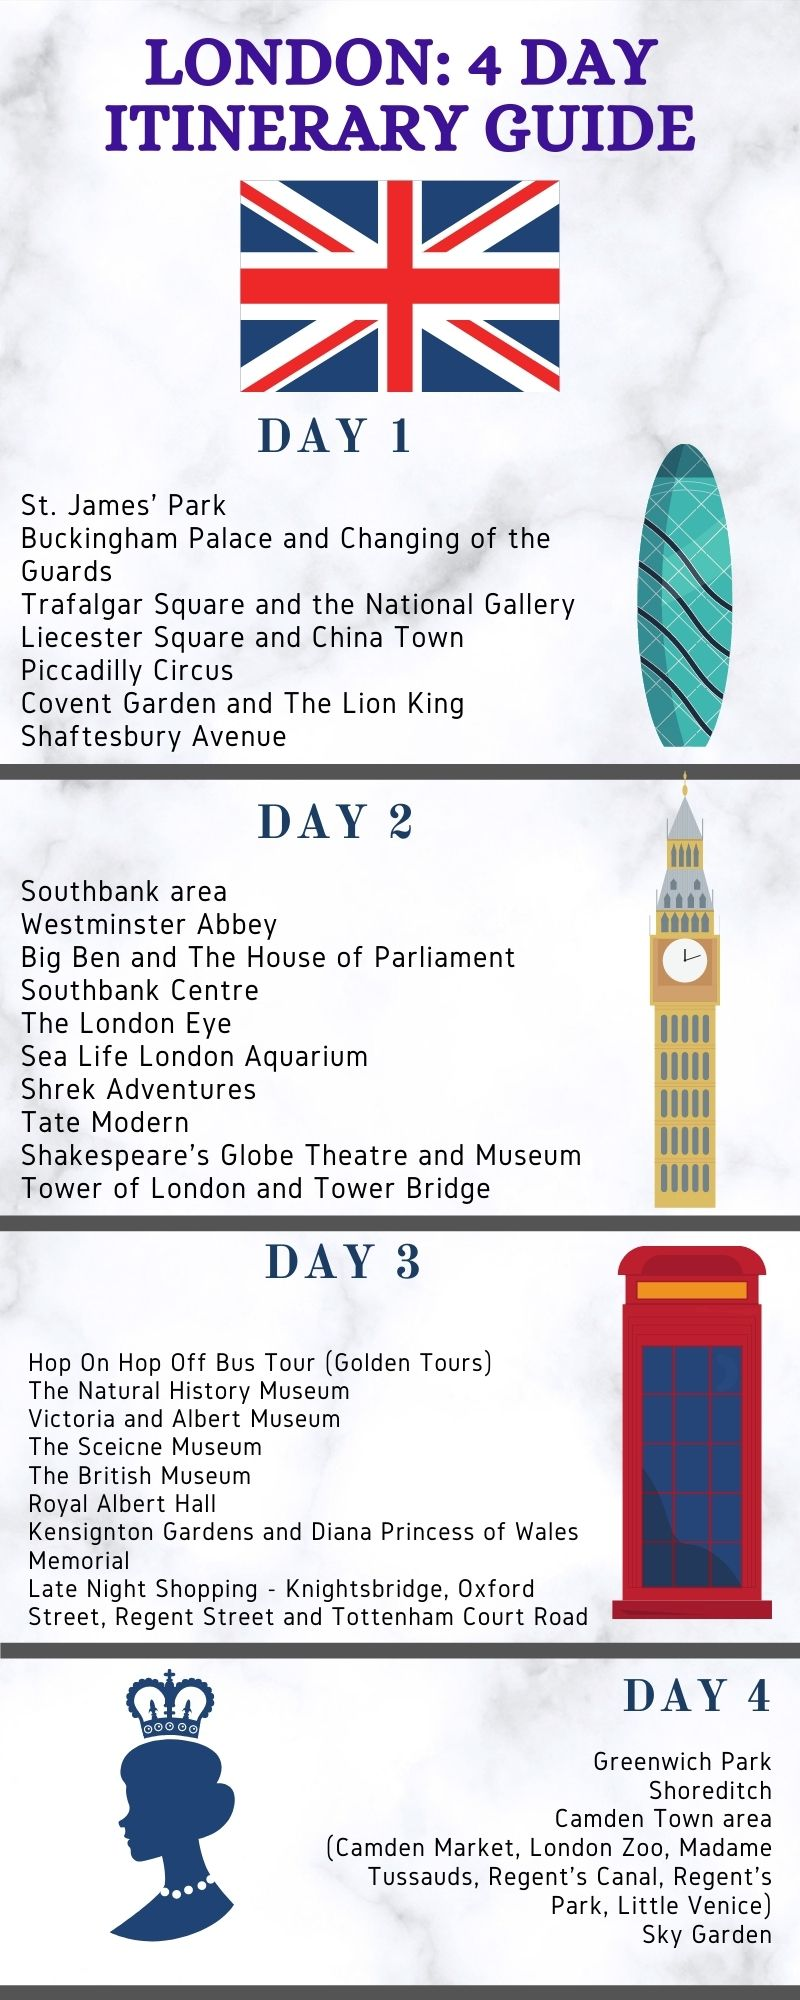 Infographic on a 4 day itinerary in London